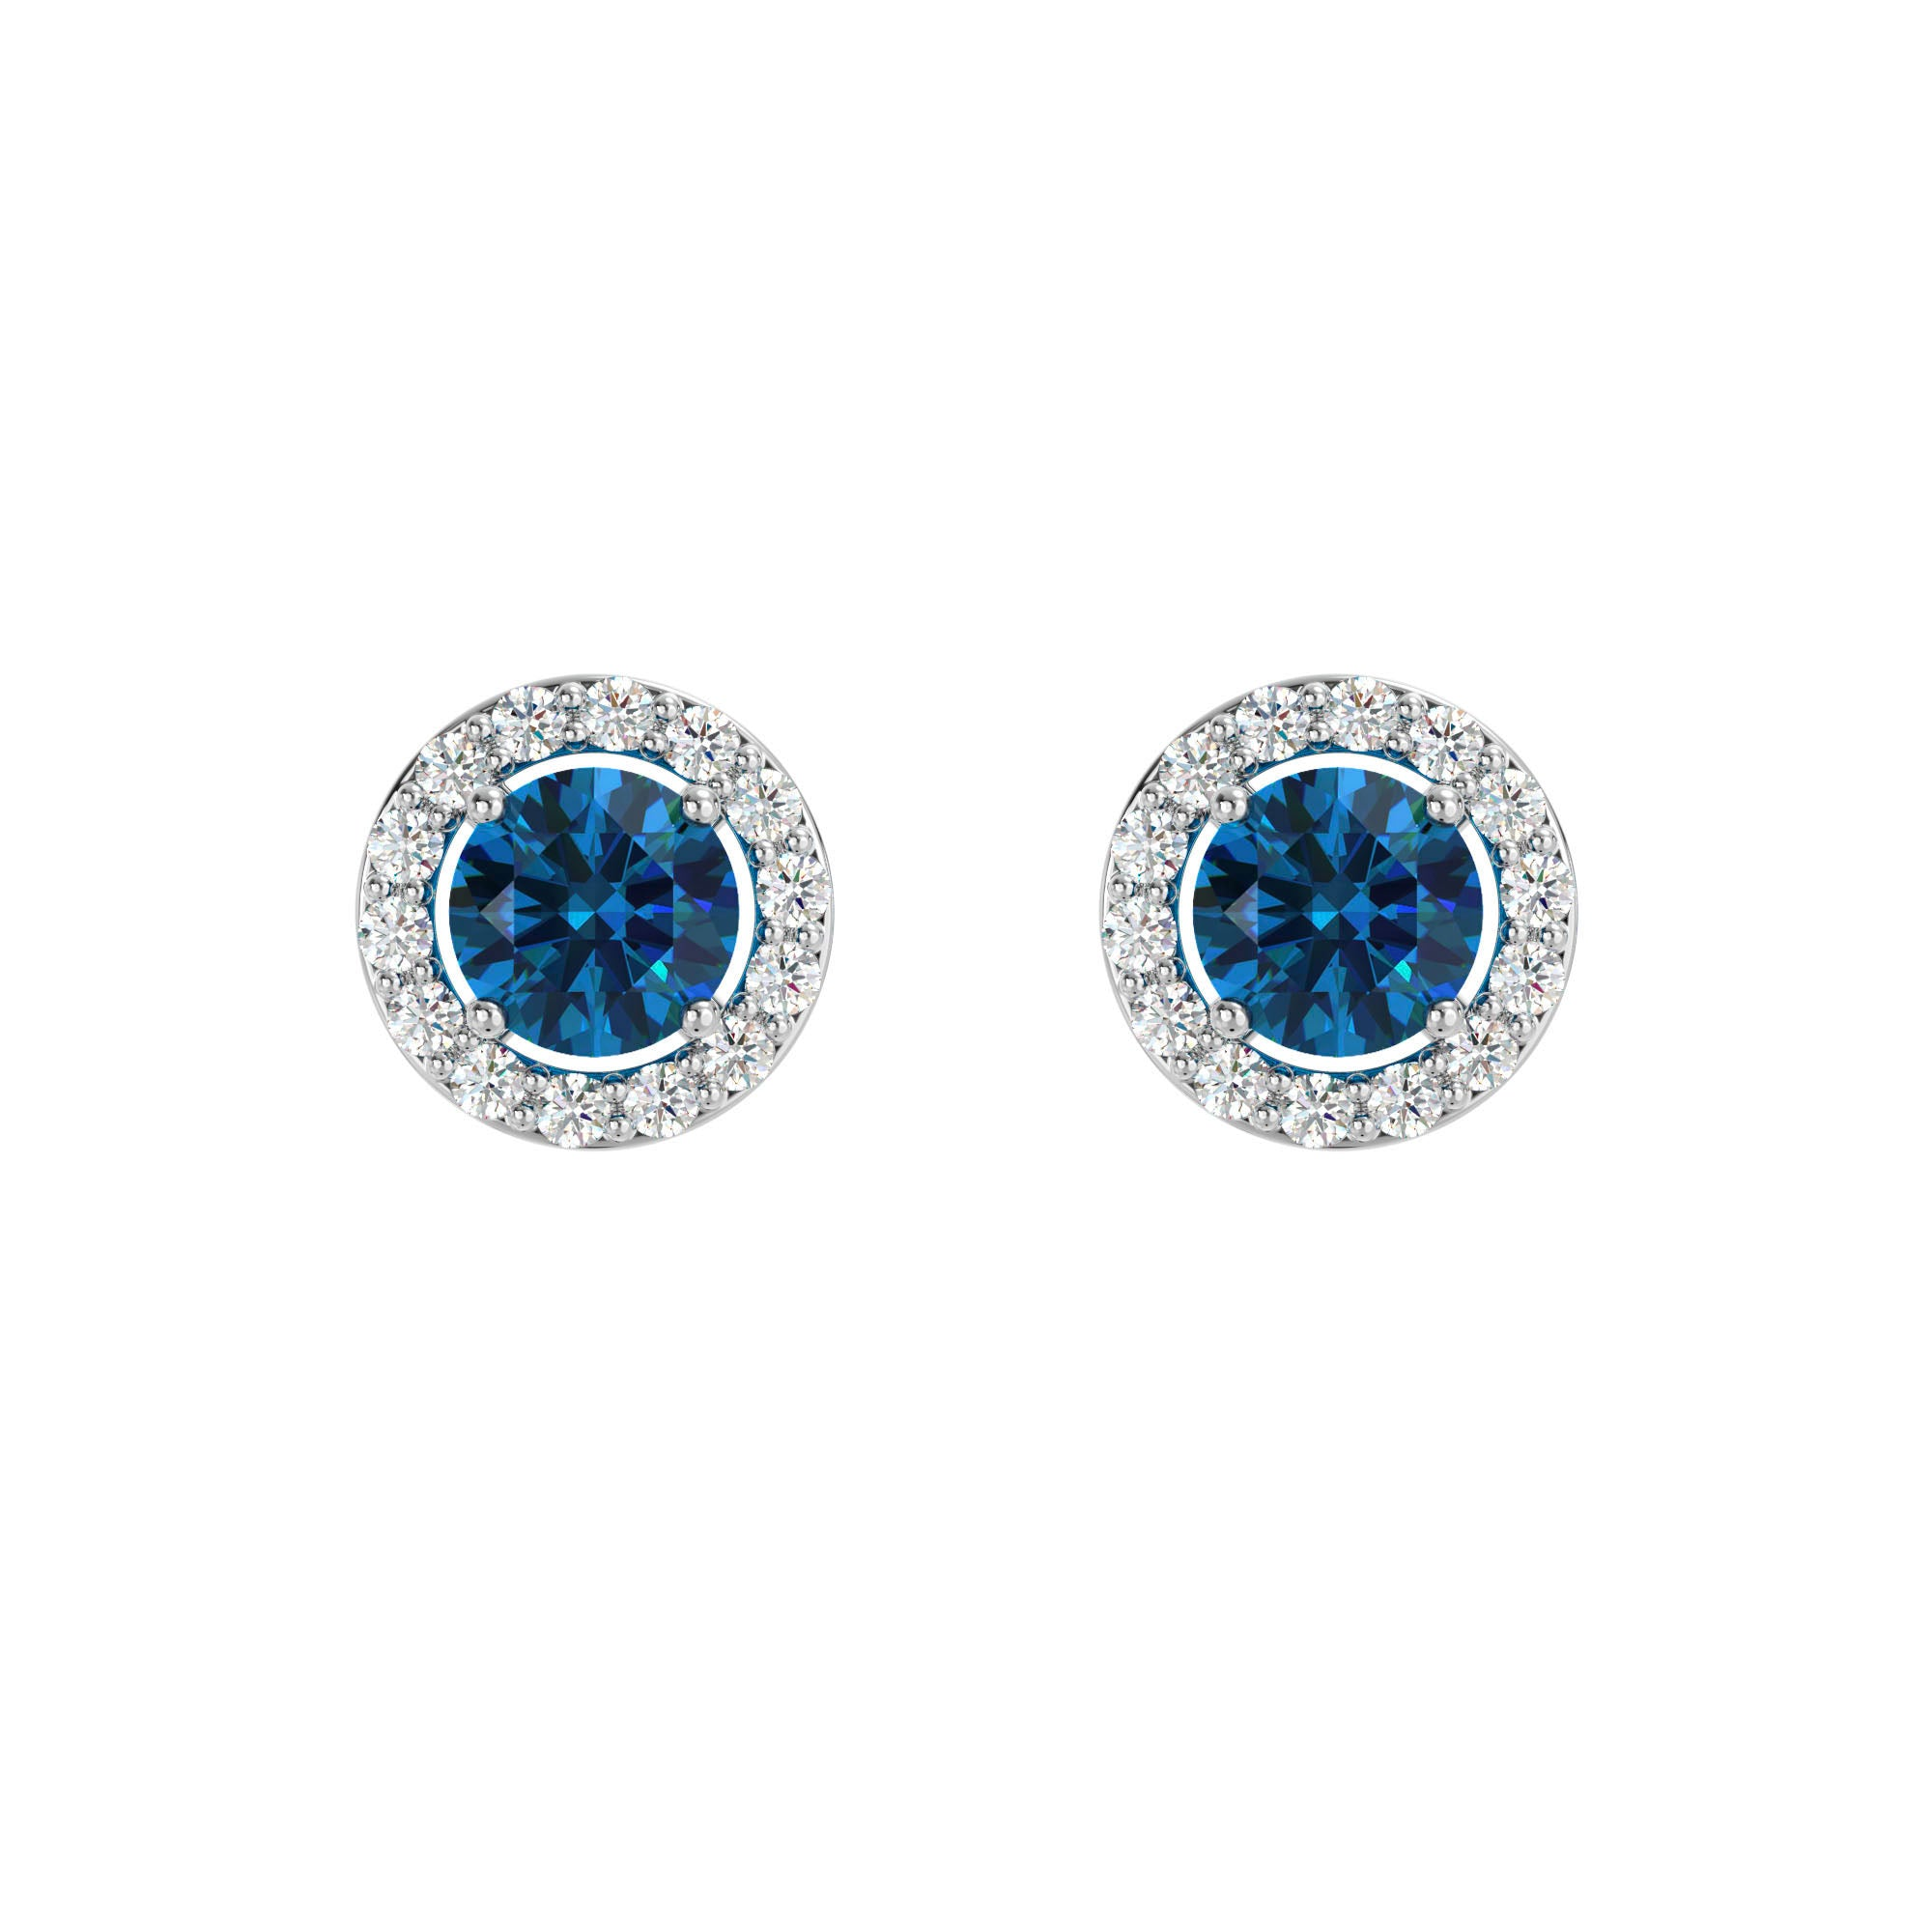 925 Silver Luxe Series Earring - Lydia (London Blue Topaz)